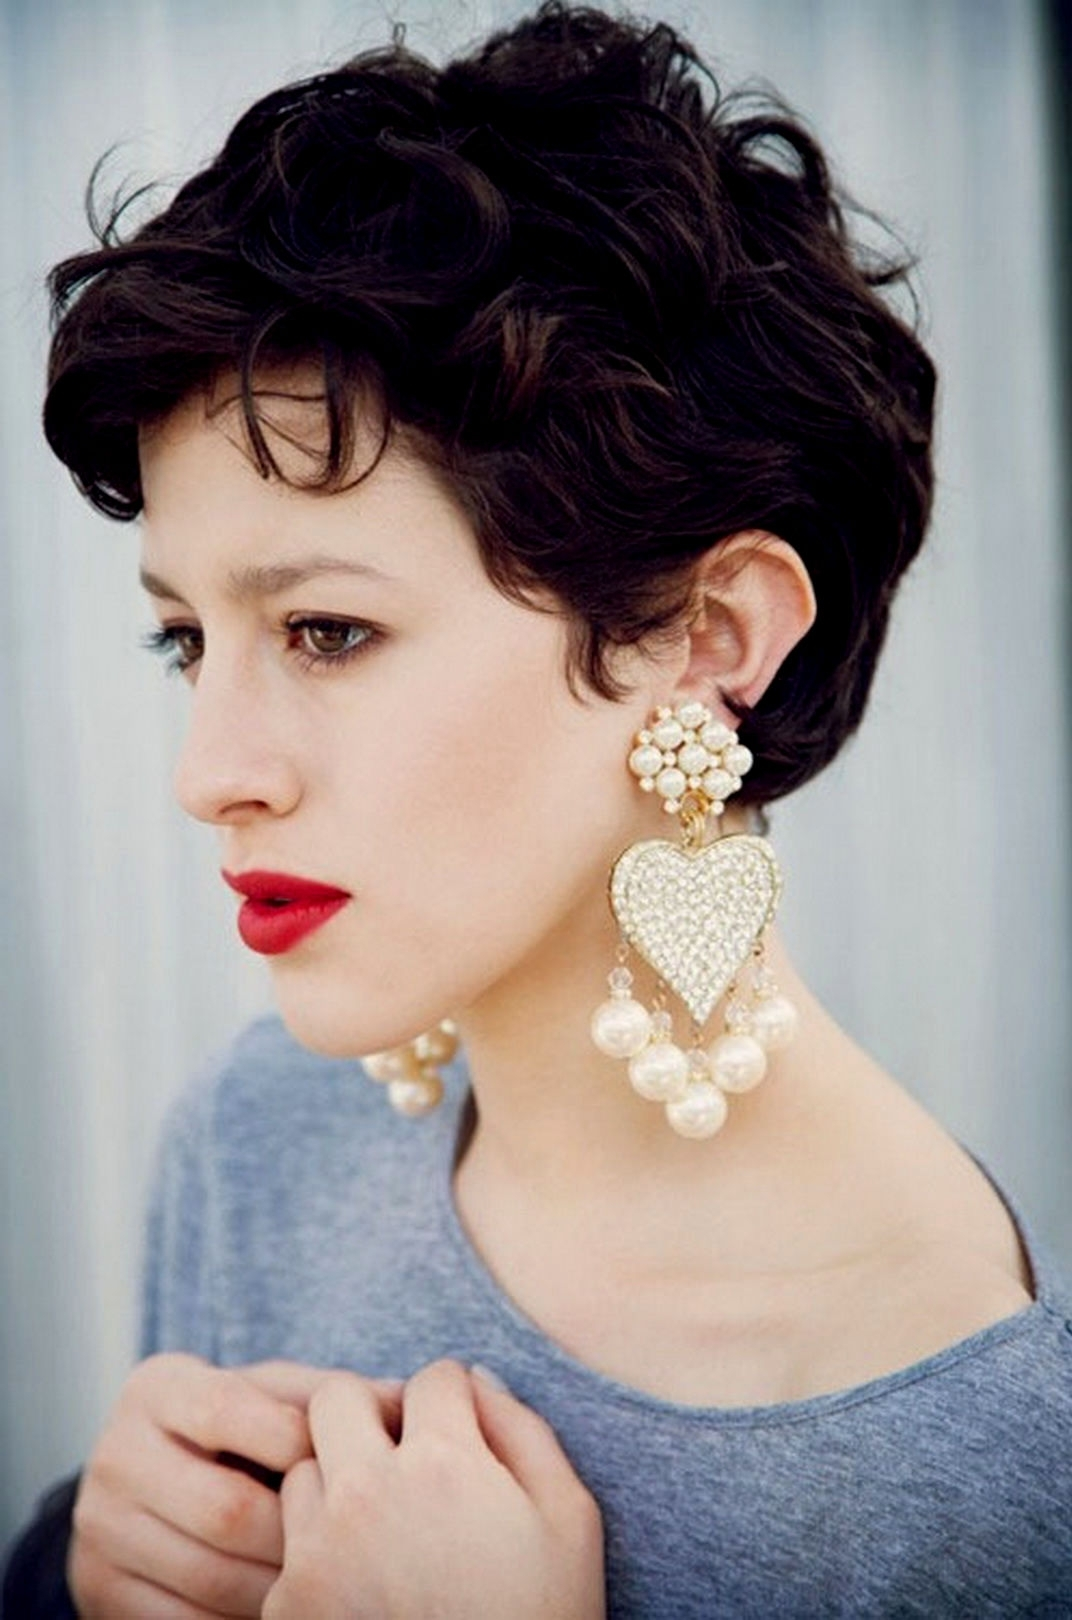 Pixie Hairstyles Thick Hair | Hairstyles Ideas Within Recent Thick Hair Pixie Hairstyles (View 13 of 15)